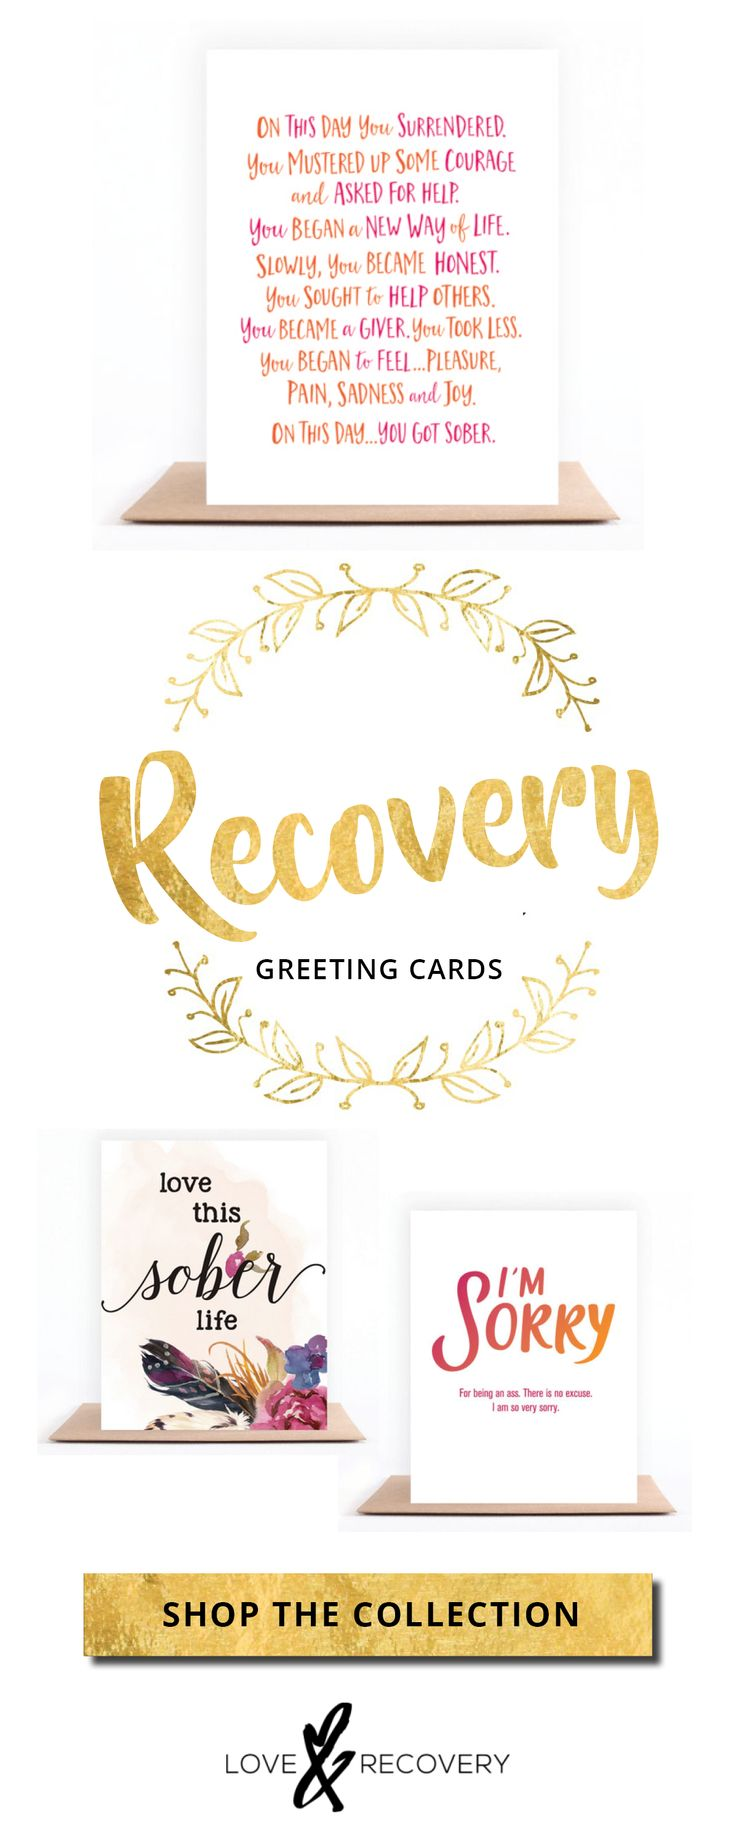 77 best greeting cards lr images on pinterest greeting cards recovery greeting cards available now recovery sobriety addiction cleanandsober kristyandbryce Gallery